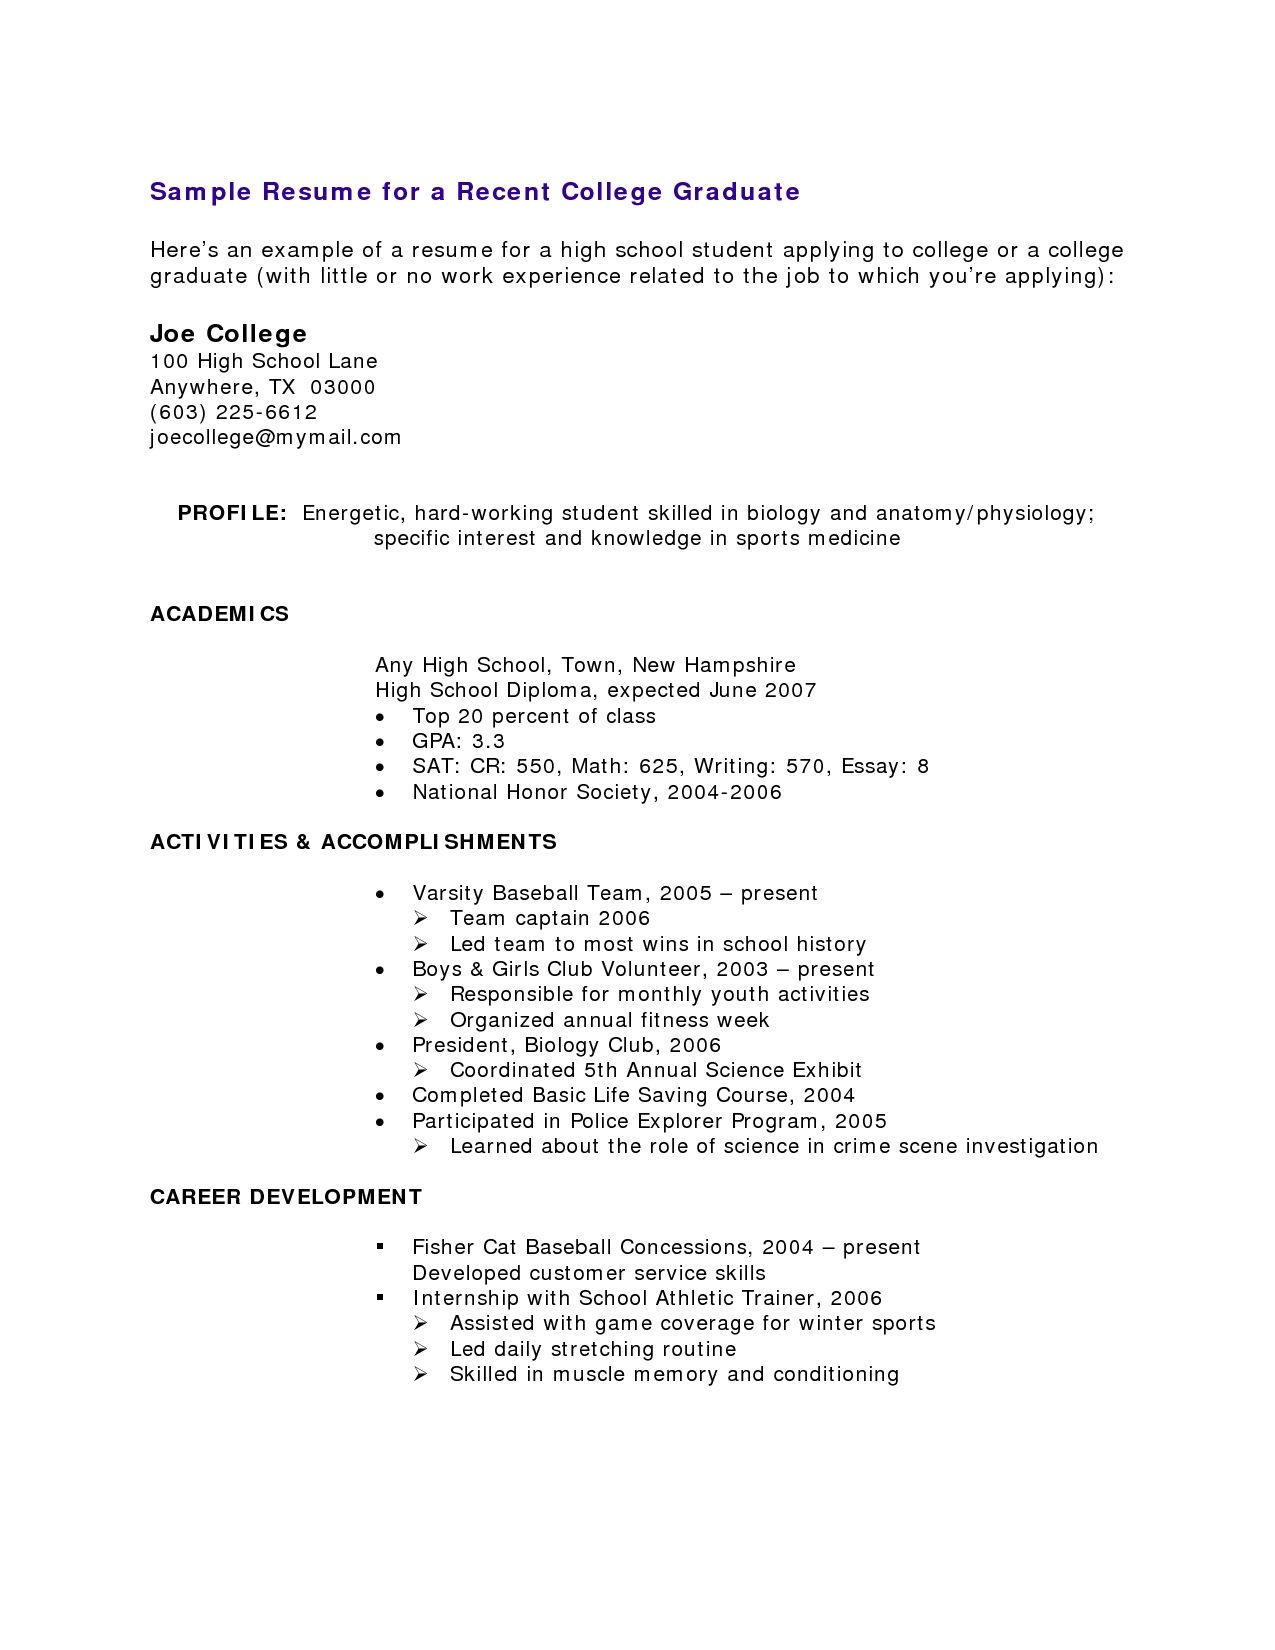 Resume High School Degree Resume sample resume for high school graduate with no work experience 2017 how to write a highschool graduate